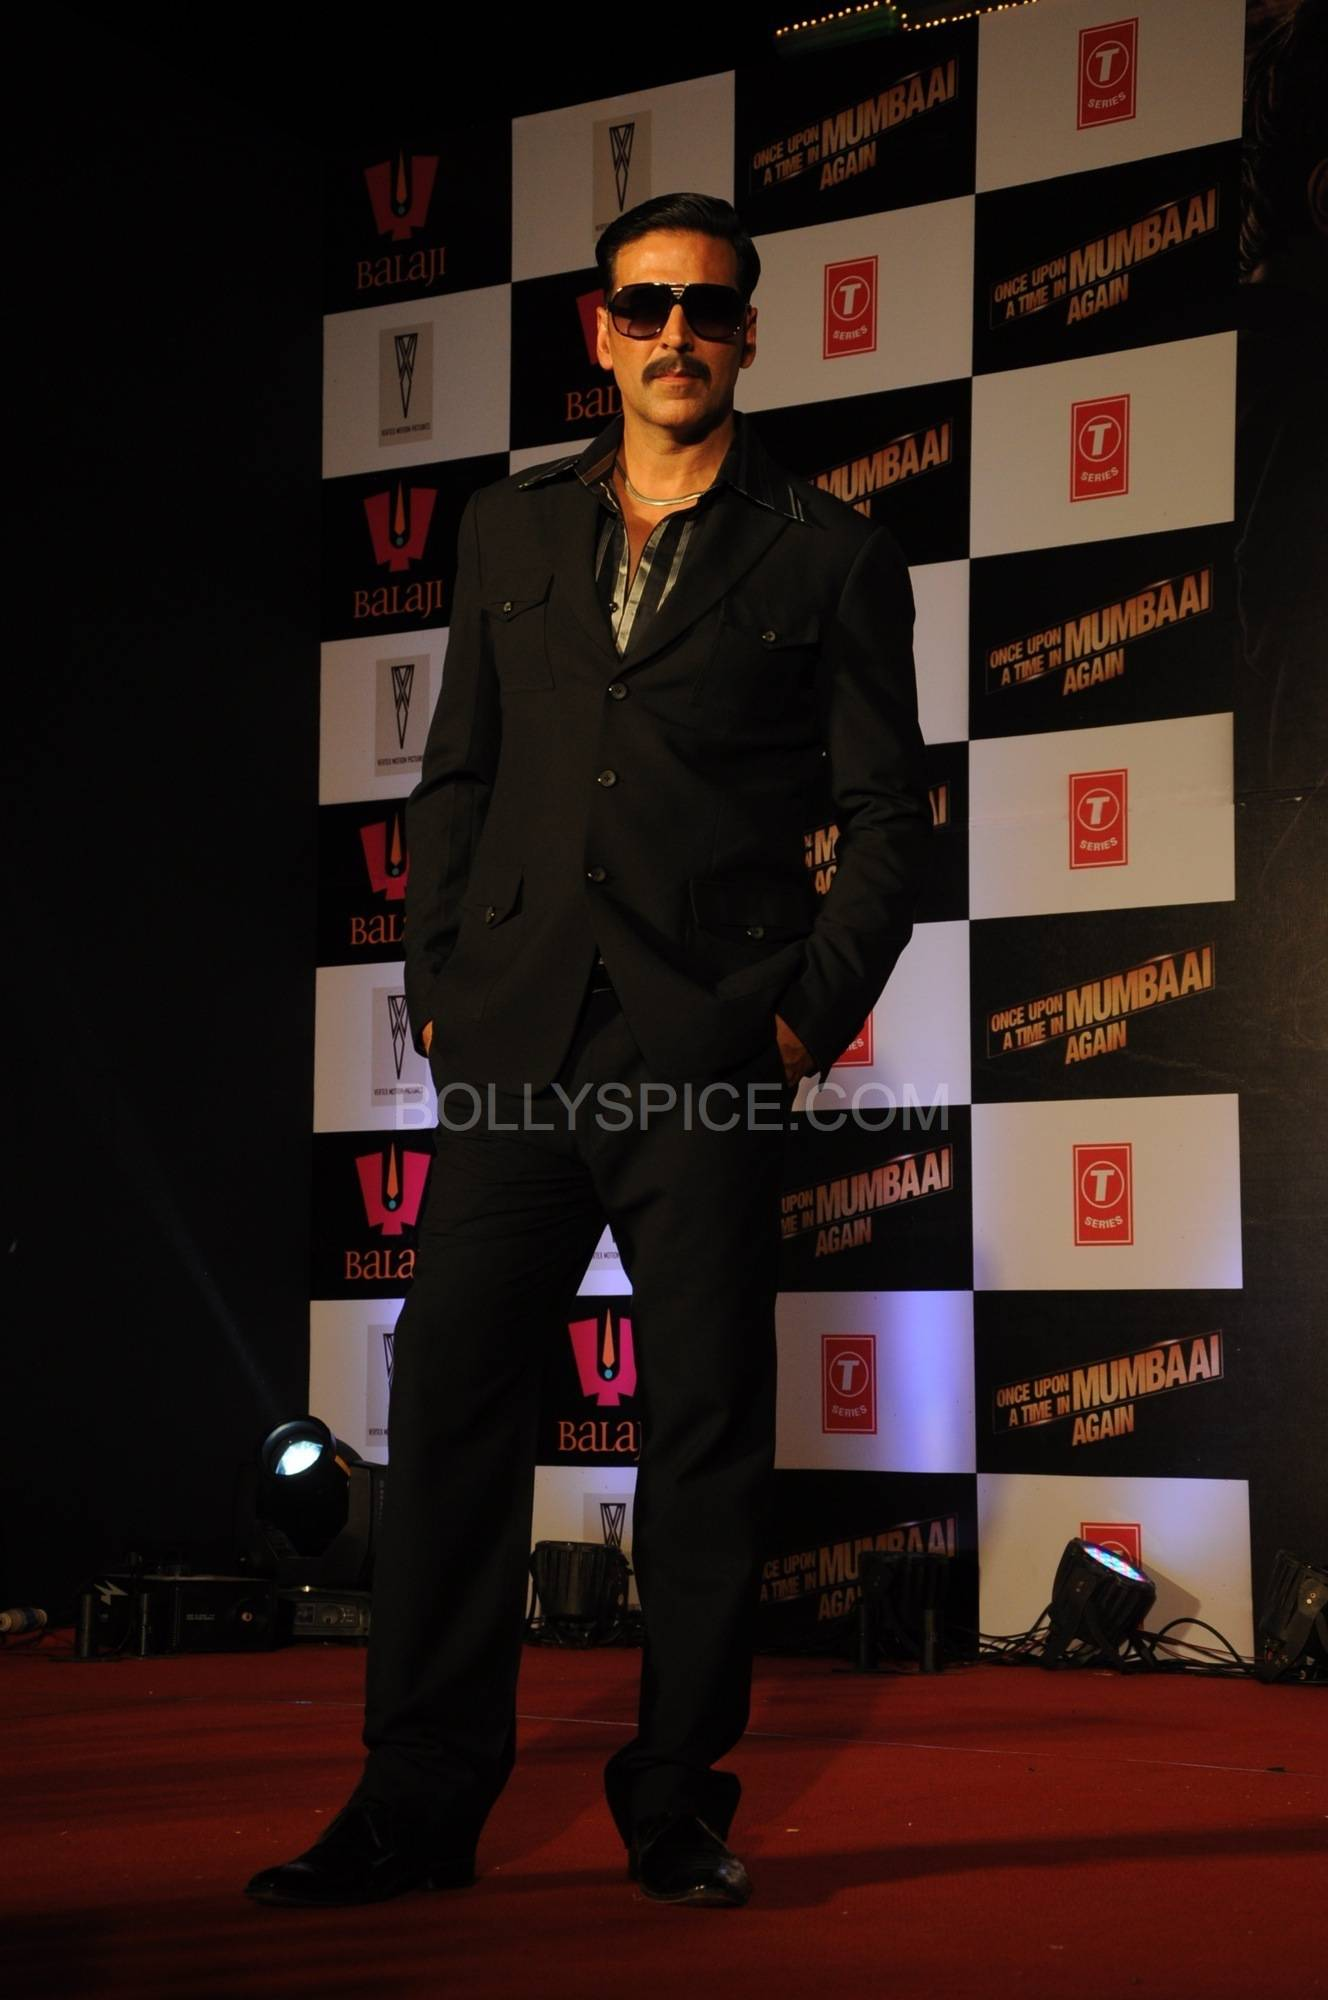 ouatimalaunch01 More Exclusive Pictures from Once Upon A Time in Mumbaai Again Trailer Launch